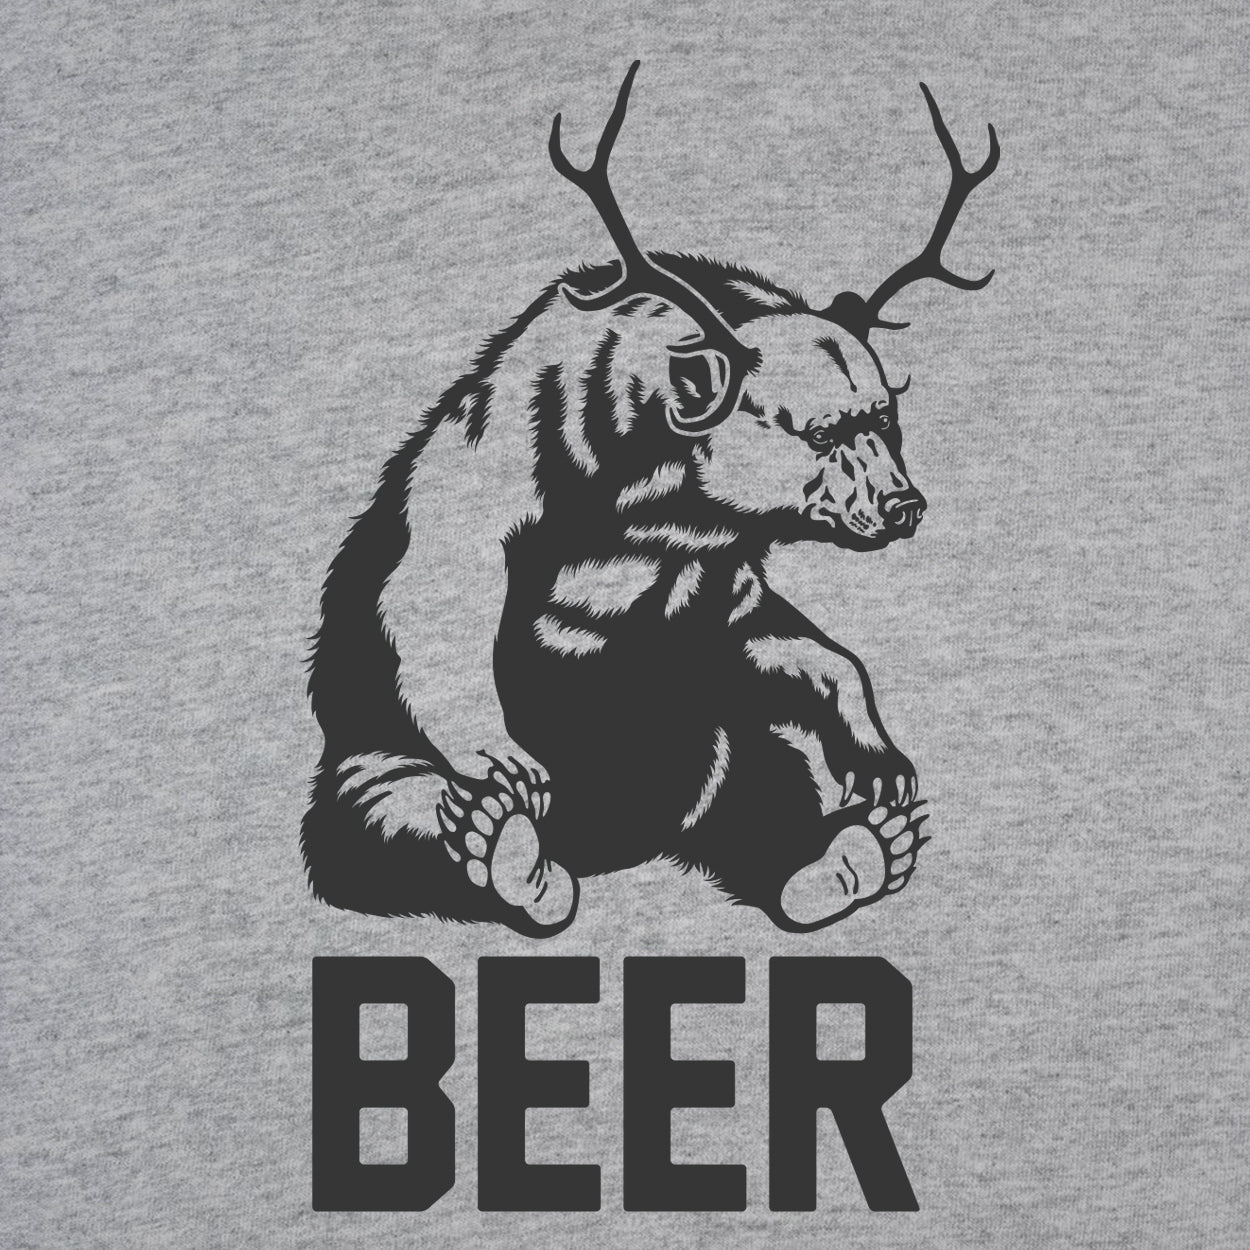 Bear Deer Beer - DonkeyTees